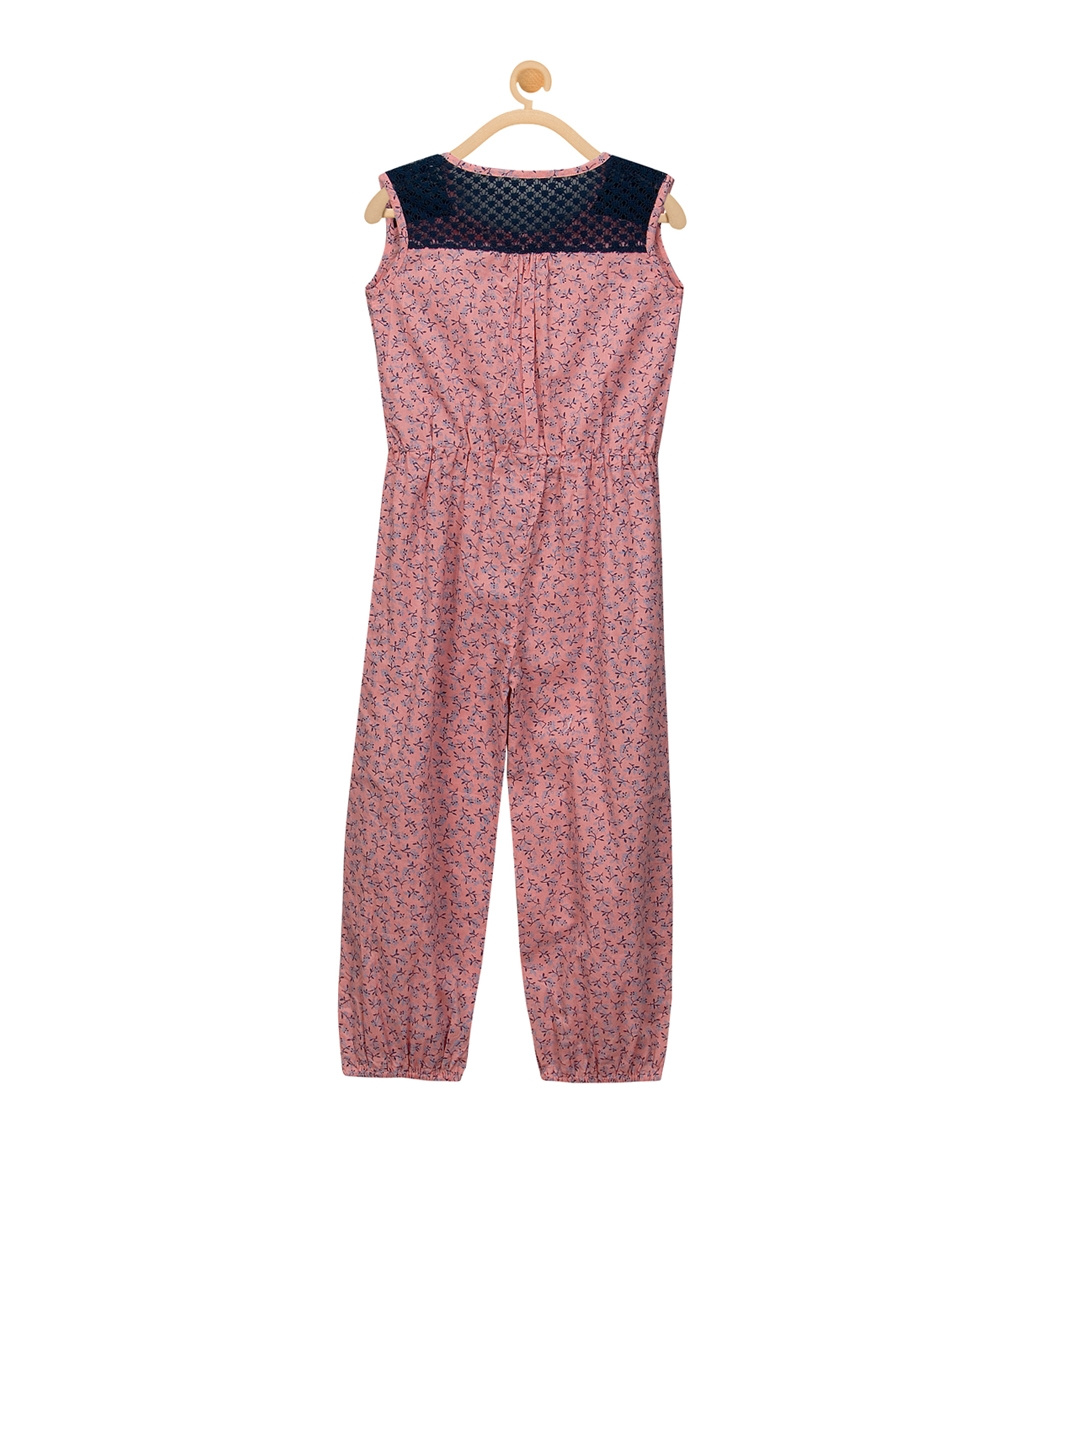 6f53683ce36 Buy Budding Bees Peach Coloured Printed Basic Jumpsuit - Jumpsuit ...